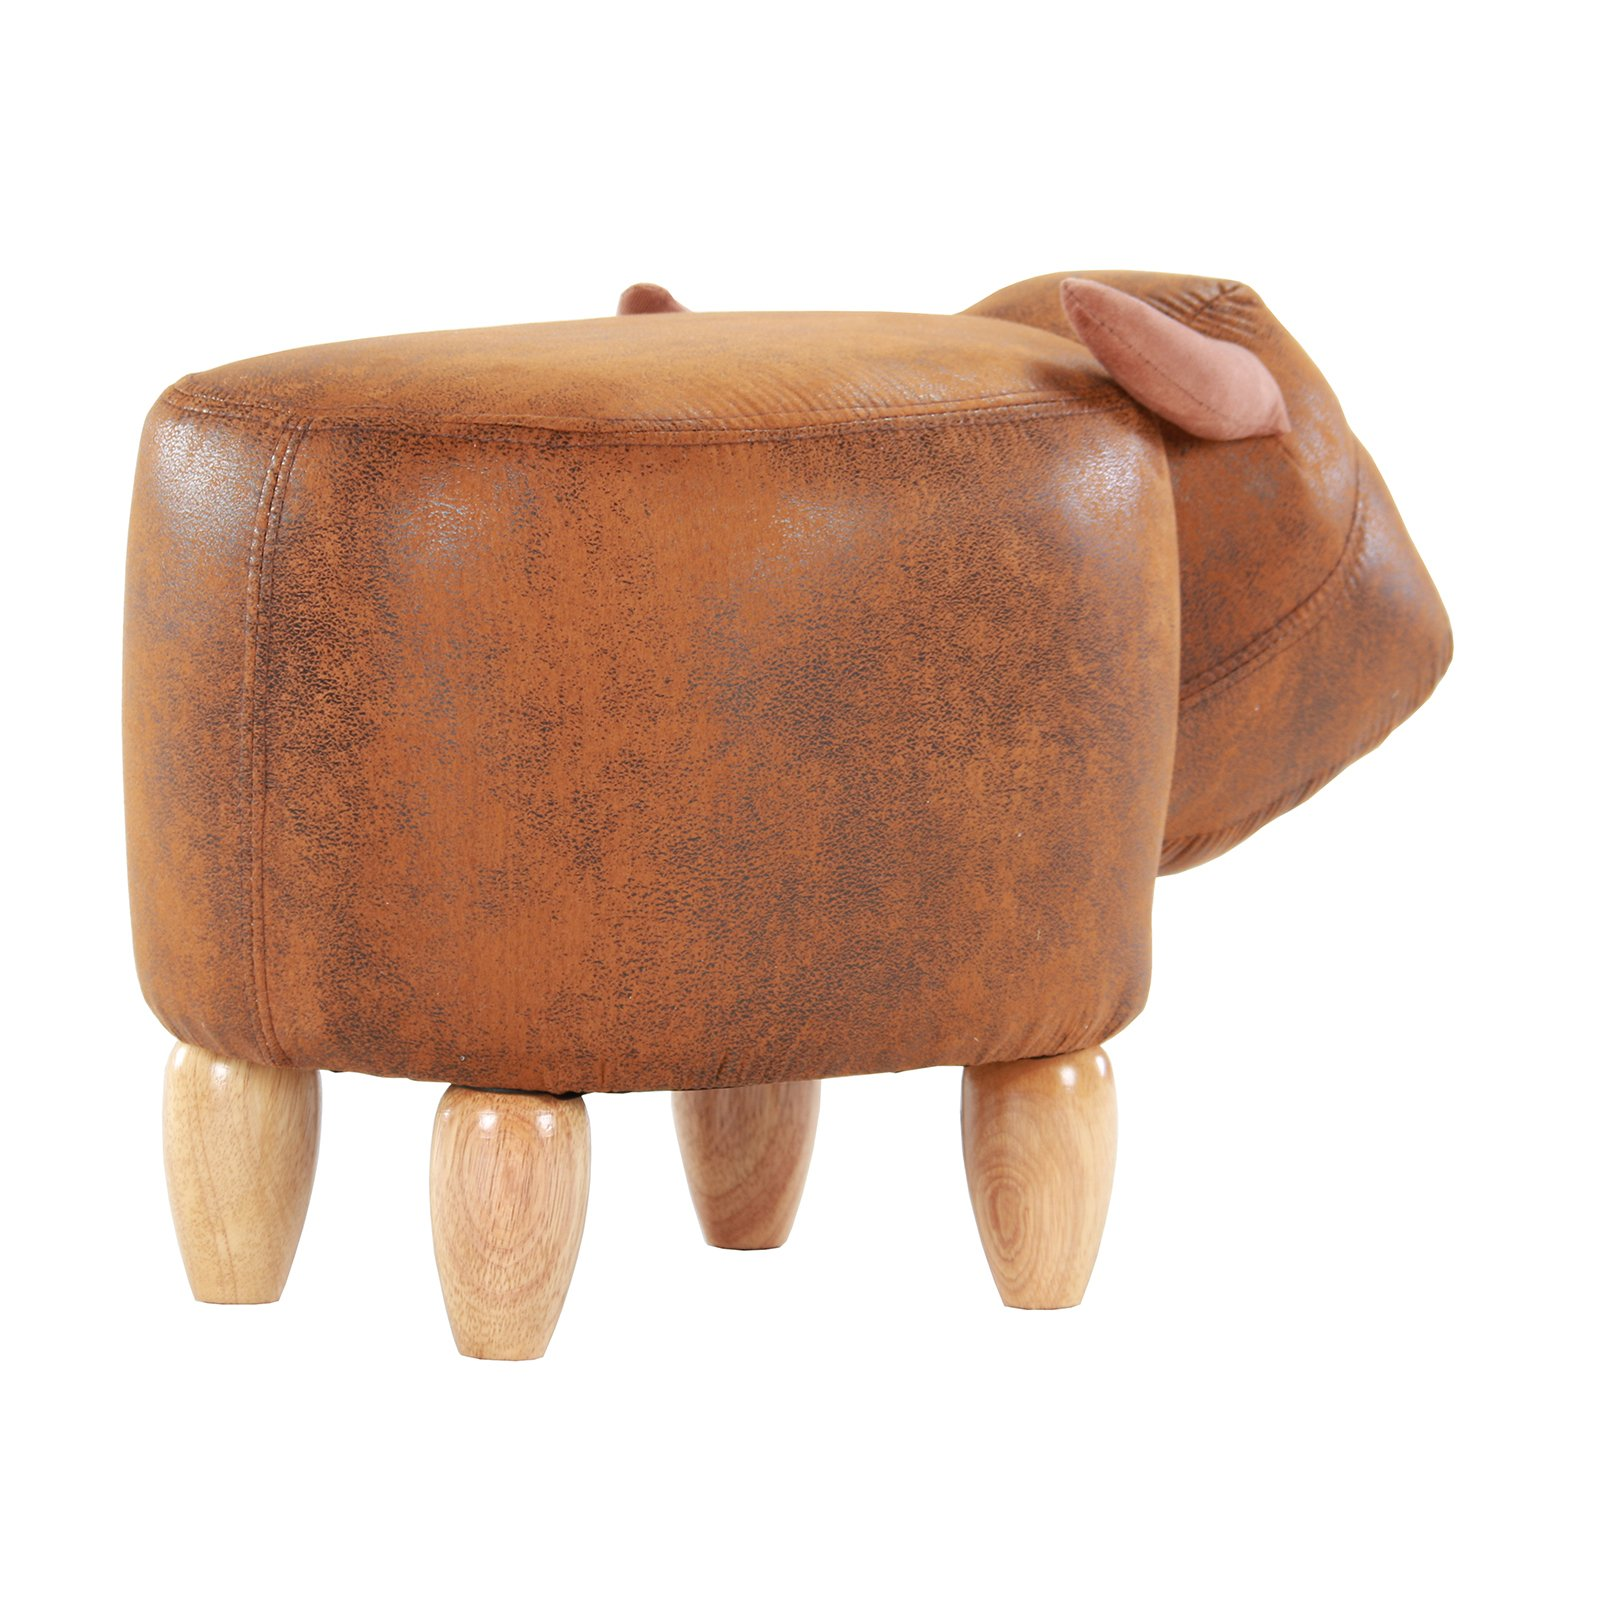 Artechworks Upholstered Ride-On Animal Ottoman Footrest Stool with Vivid Adorable Animal-Like Features,Perfect for Gift, Changing Shoes, Decoration, Toys, Without Storage(Brown Buffalo) by Artechworks (Image #5)